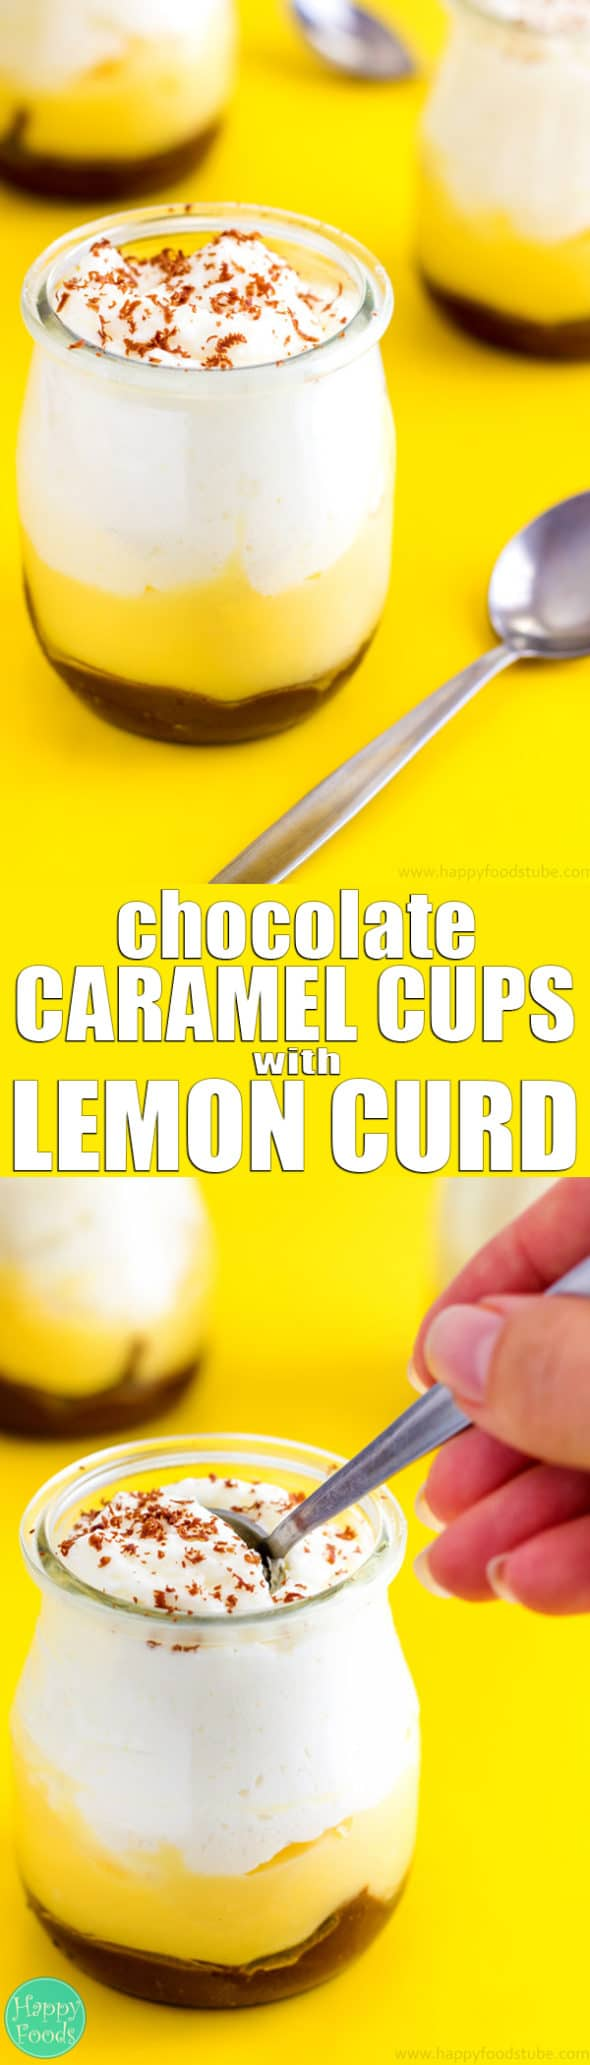 Caramel Dessert Cups - A combination of thick sweet chocolate caramel, citrusy Lemon Curd with whipped cream is a dream come true dessert